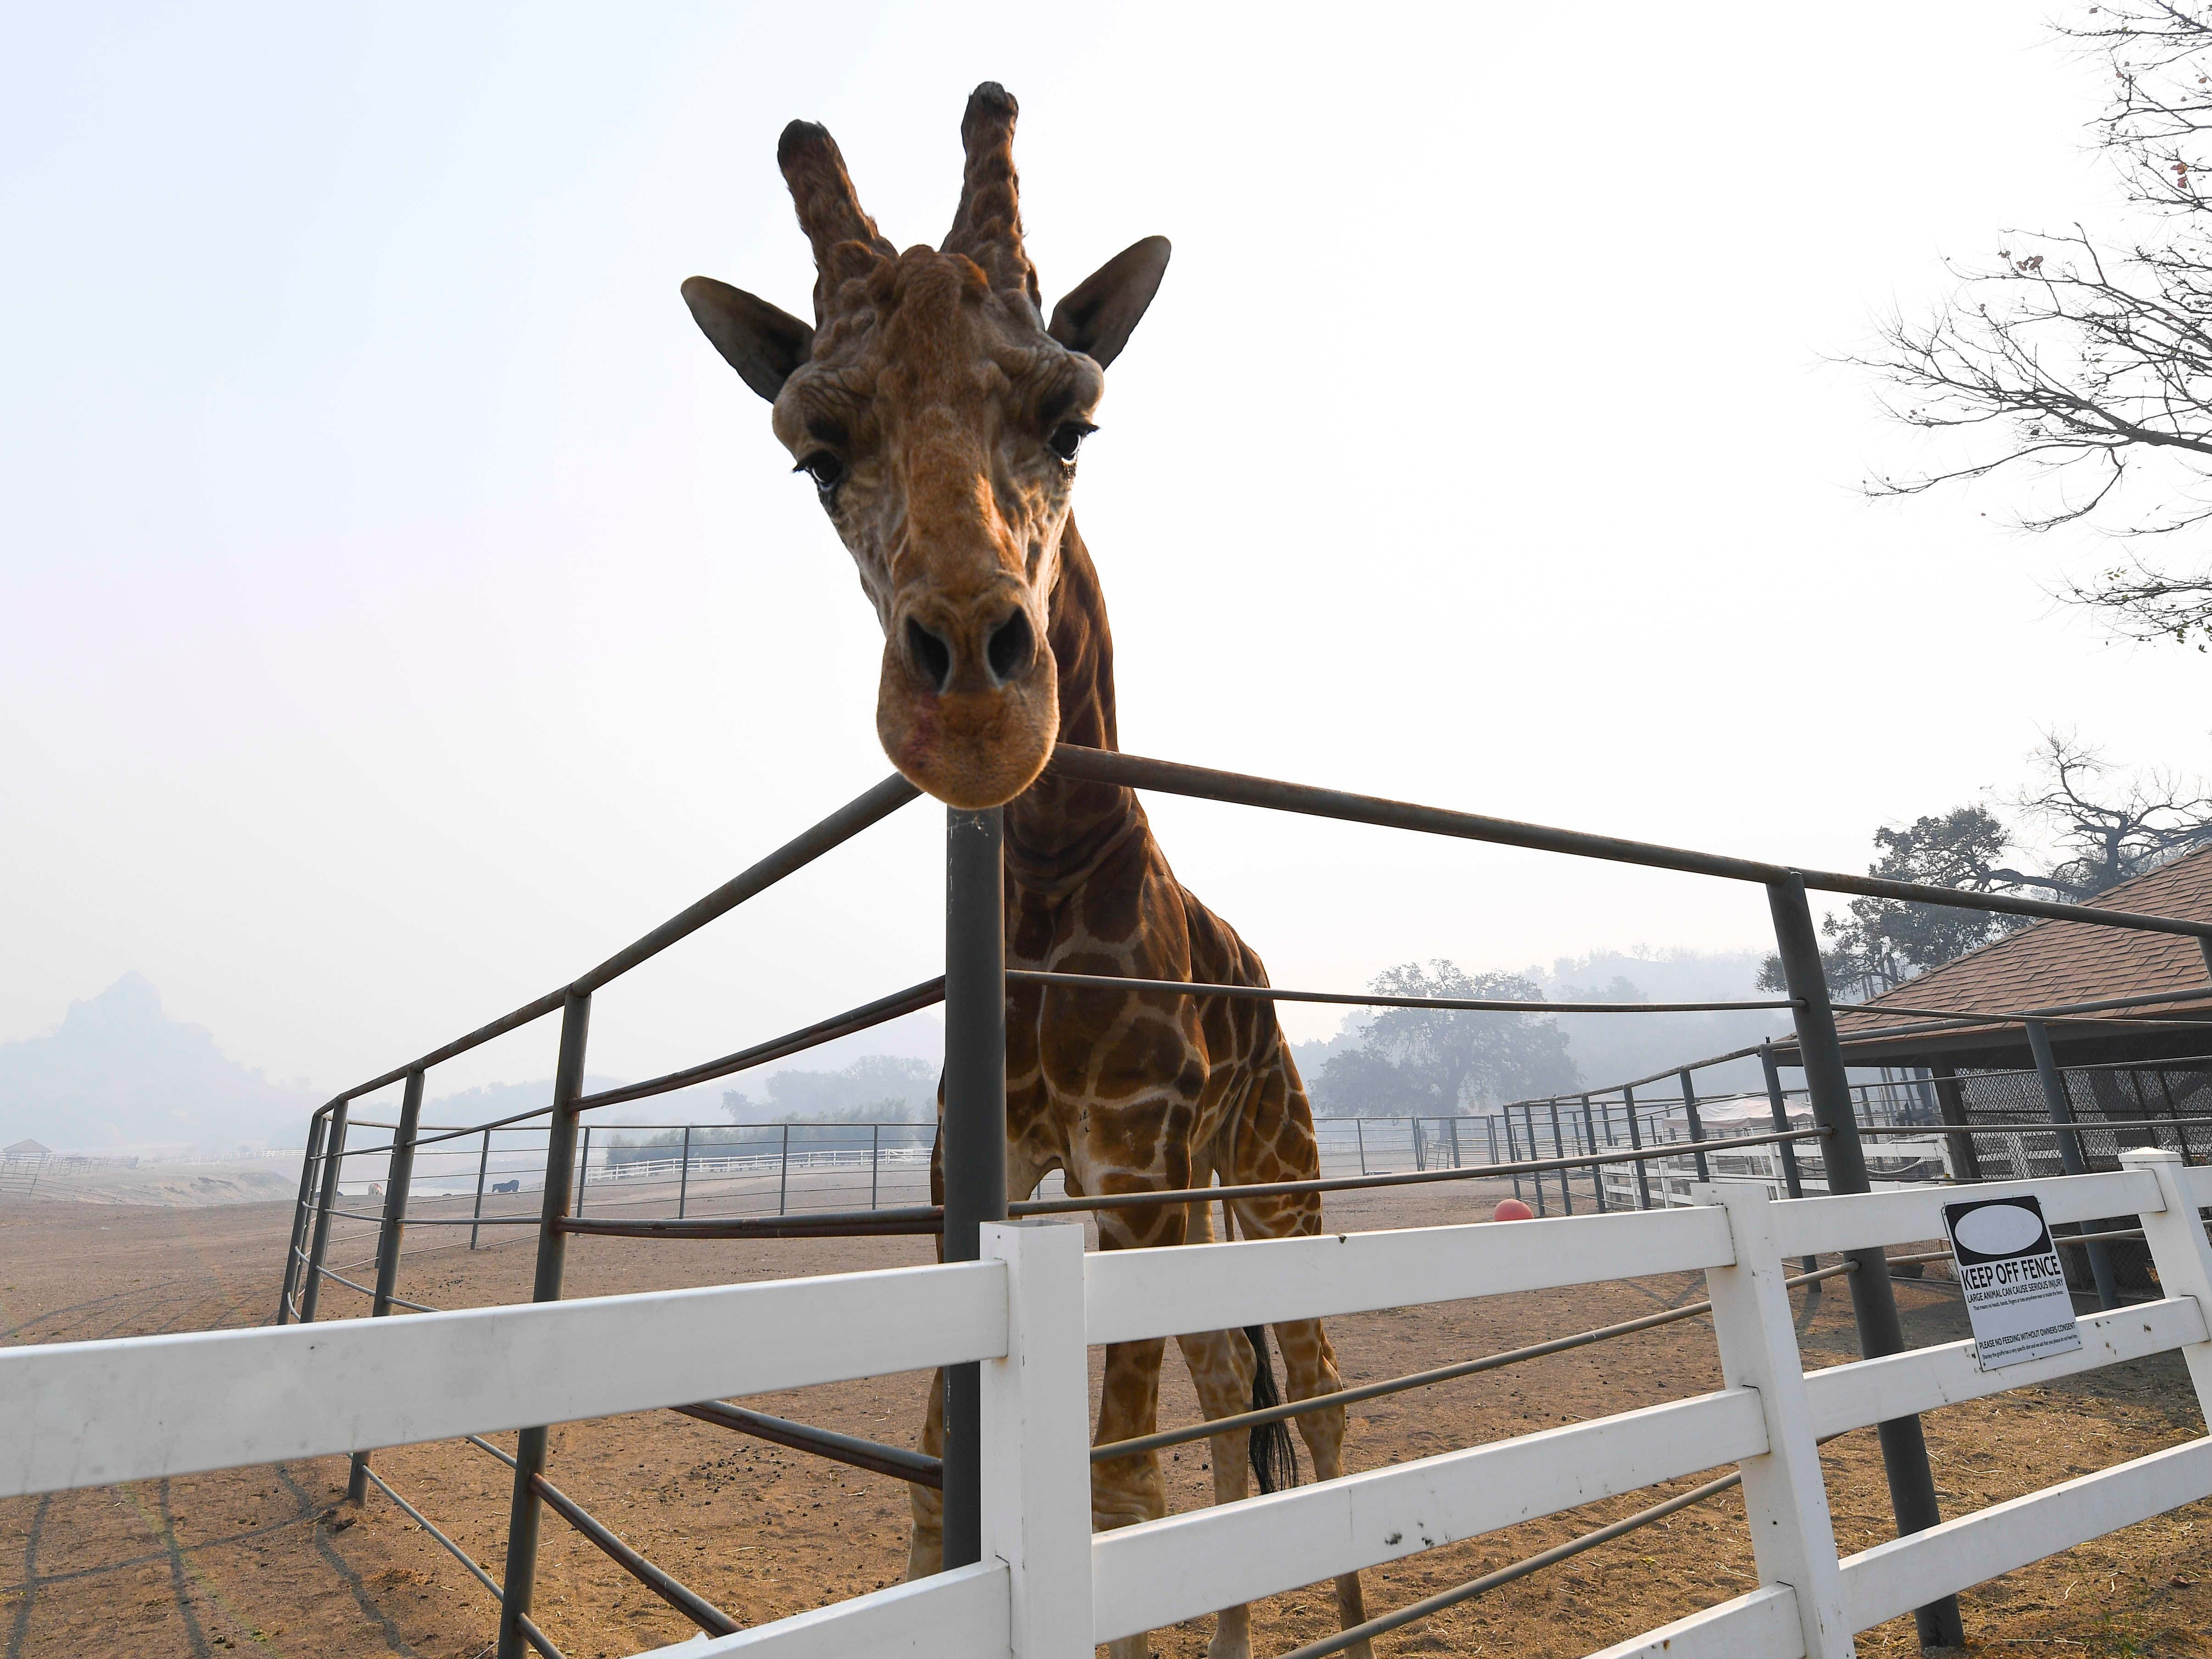 Stanley The Giraffe, one of several exotic animals at Saddlerock Ranch, is shrouded in smoke from the Woosley Fire in Malibu, Calif., Nov. 10, 2018. The animals on the ranch survived, but several buildings on the property were destroyed or damaged by the fire.